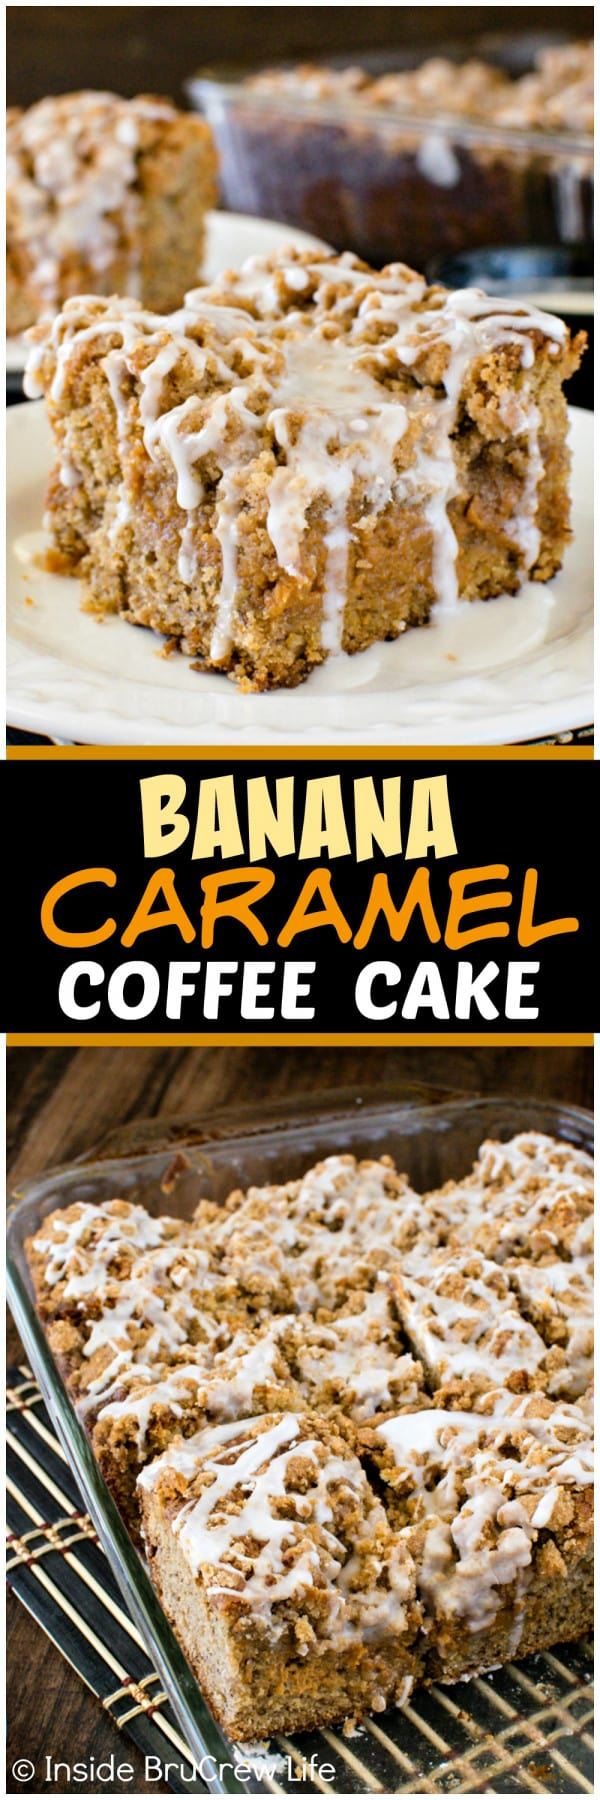 Banana Caramel Coffee Cake - lots of crumbs, glaze, and caramel cheesecake layers make this the best banana cake. Great breakfast or dessert recipe!